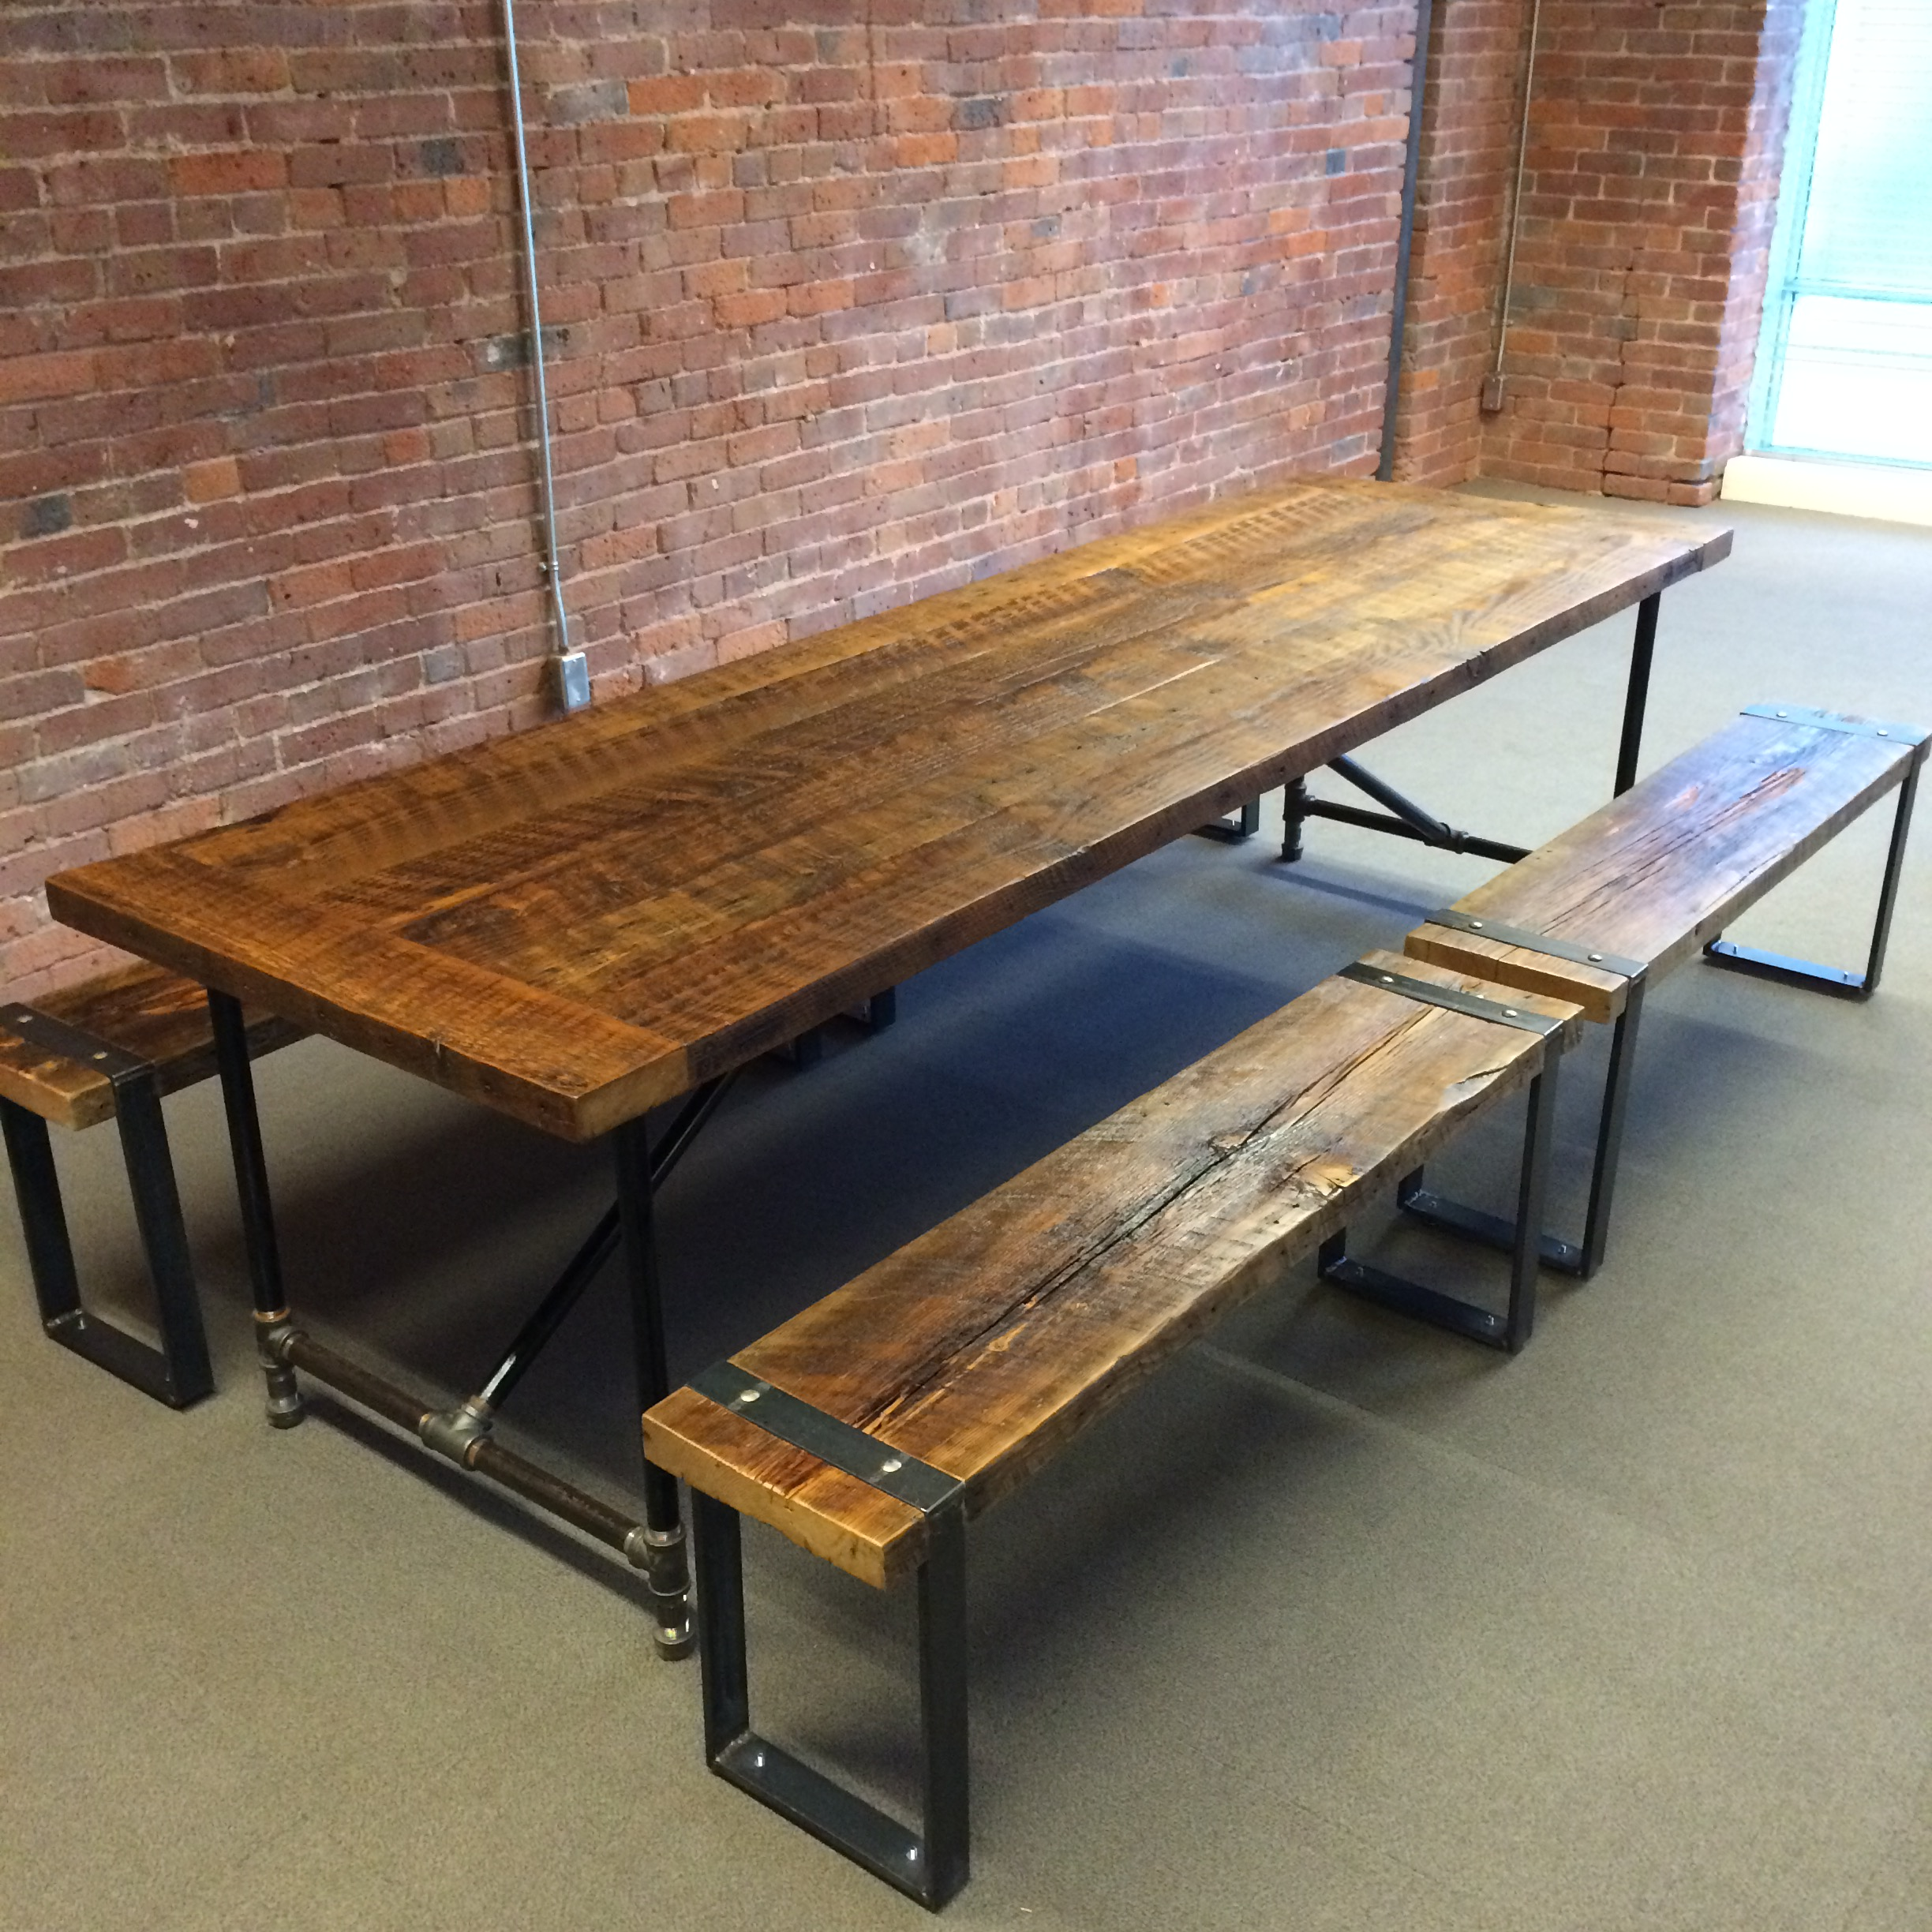 3 X 8 Table J Ands Reclaimed Custom Wood Furniture Check Out The